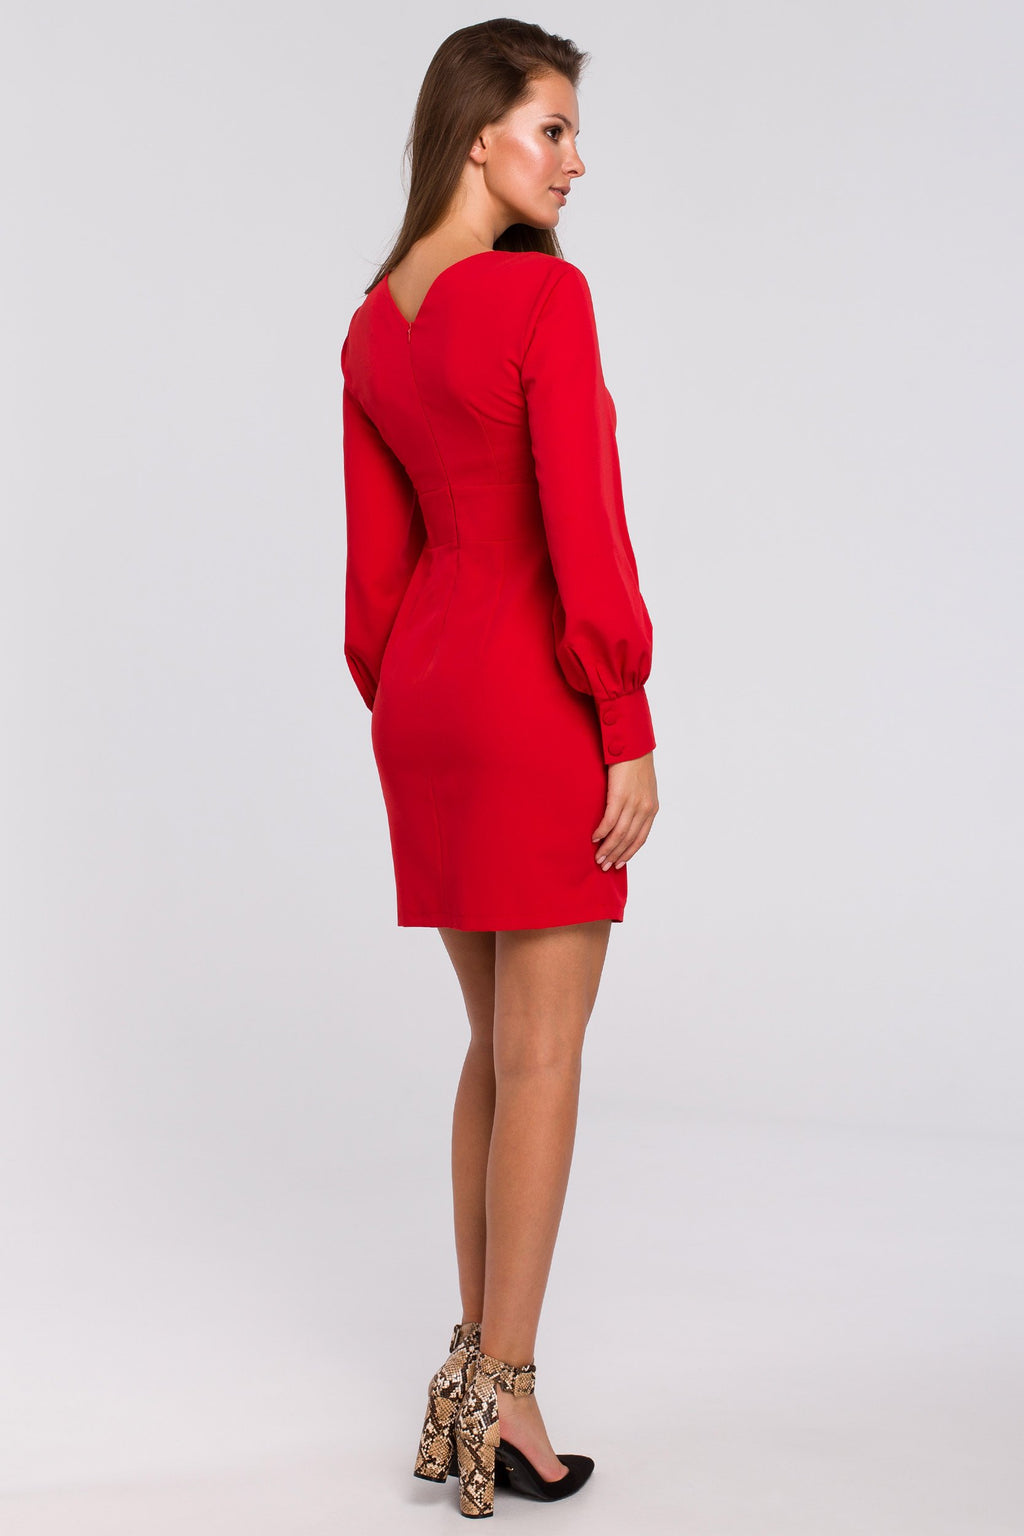 Mini Red Dress With Puff Long Sleeves - So Chic Boutique